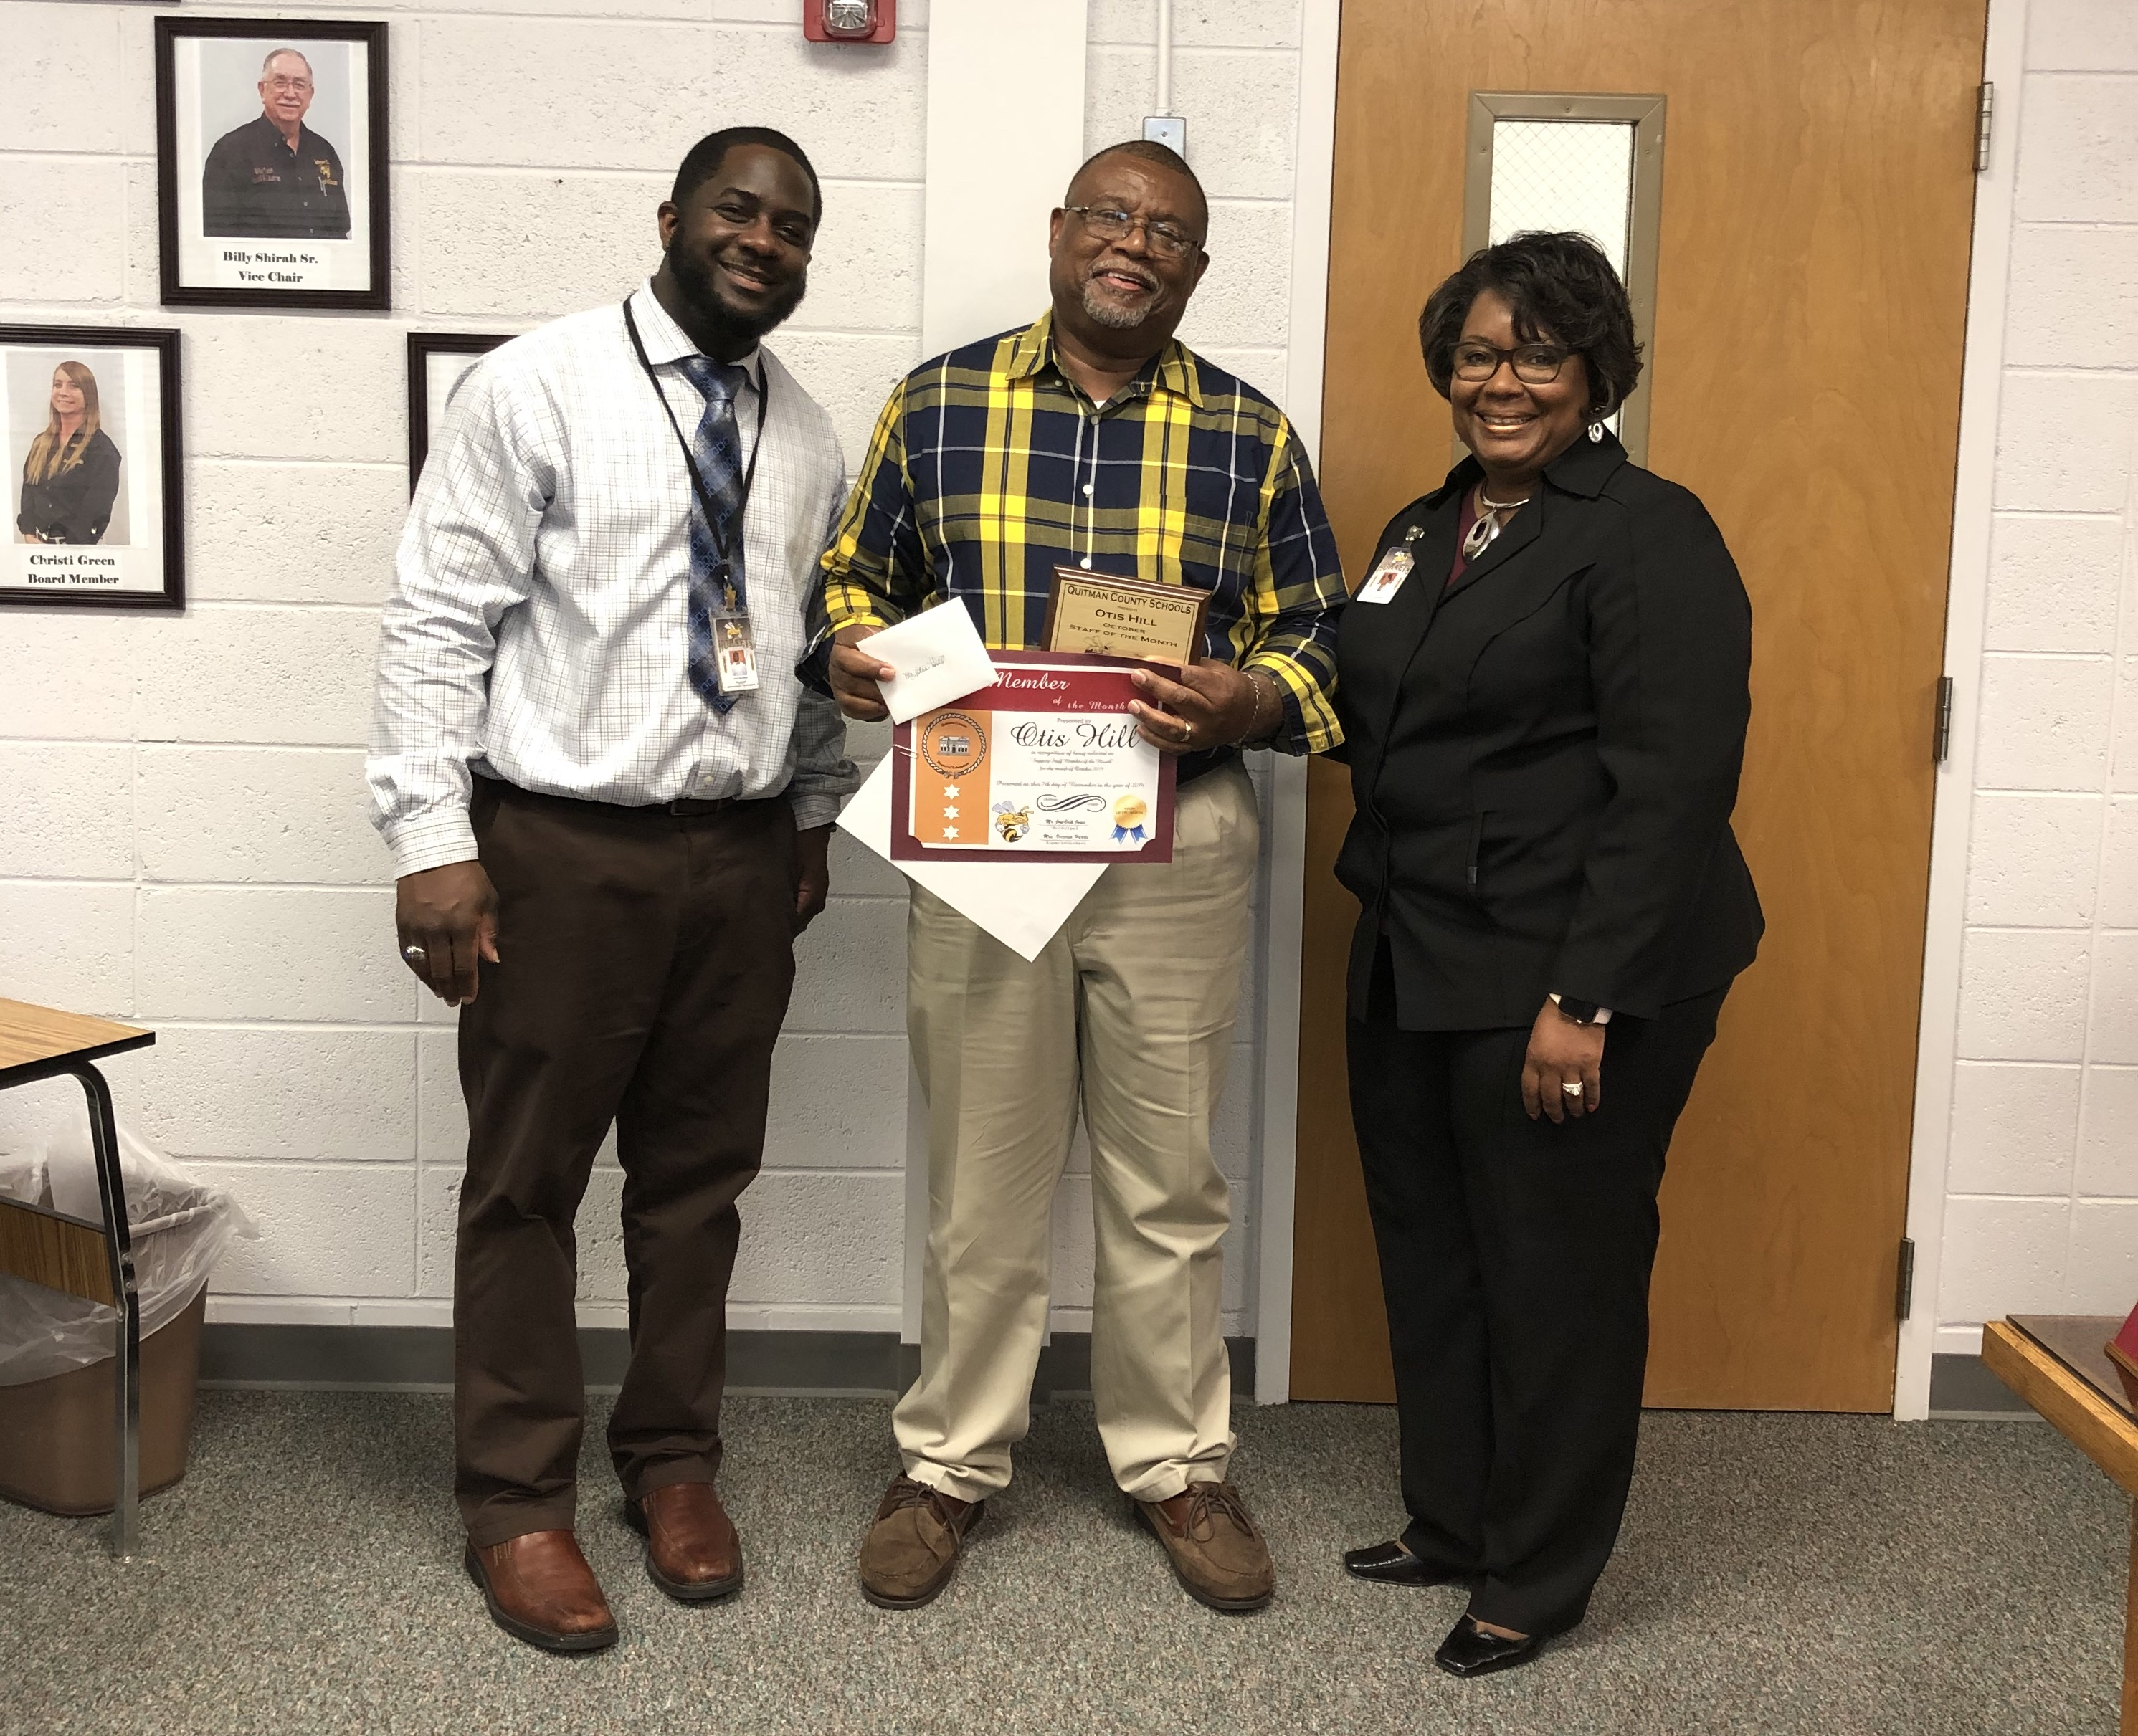 November Board Meeting - October 2019 Staff of the Month Mr Otis Hill